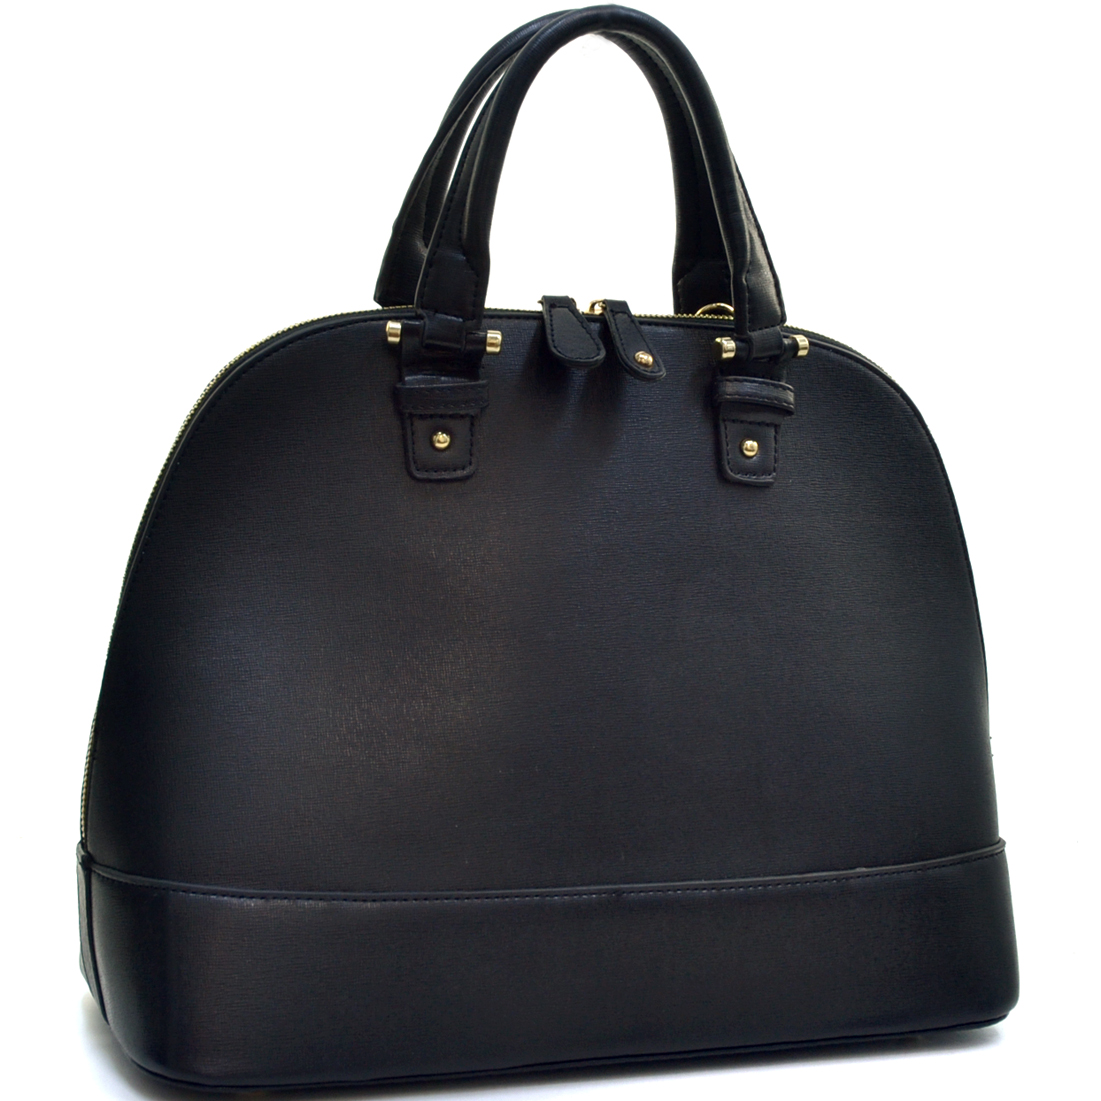 Fashlets Women Bags Leather Handbags Zip Around Flat Bottom Fashion Shoulder Bag at Sears.com